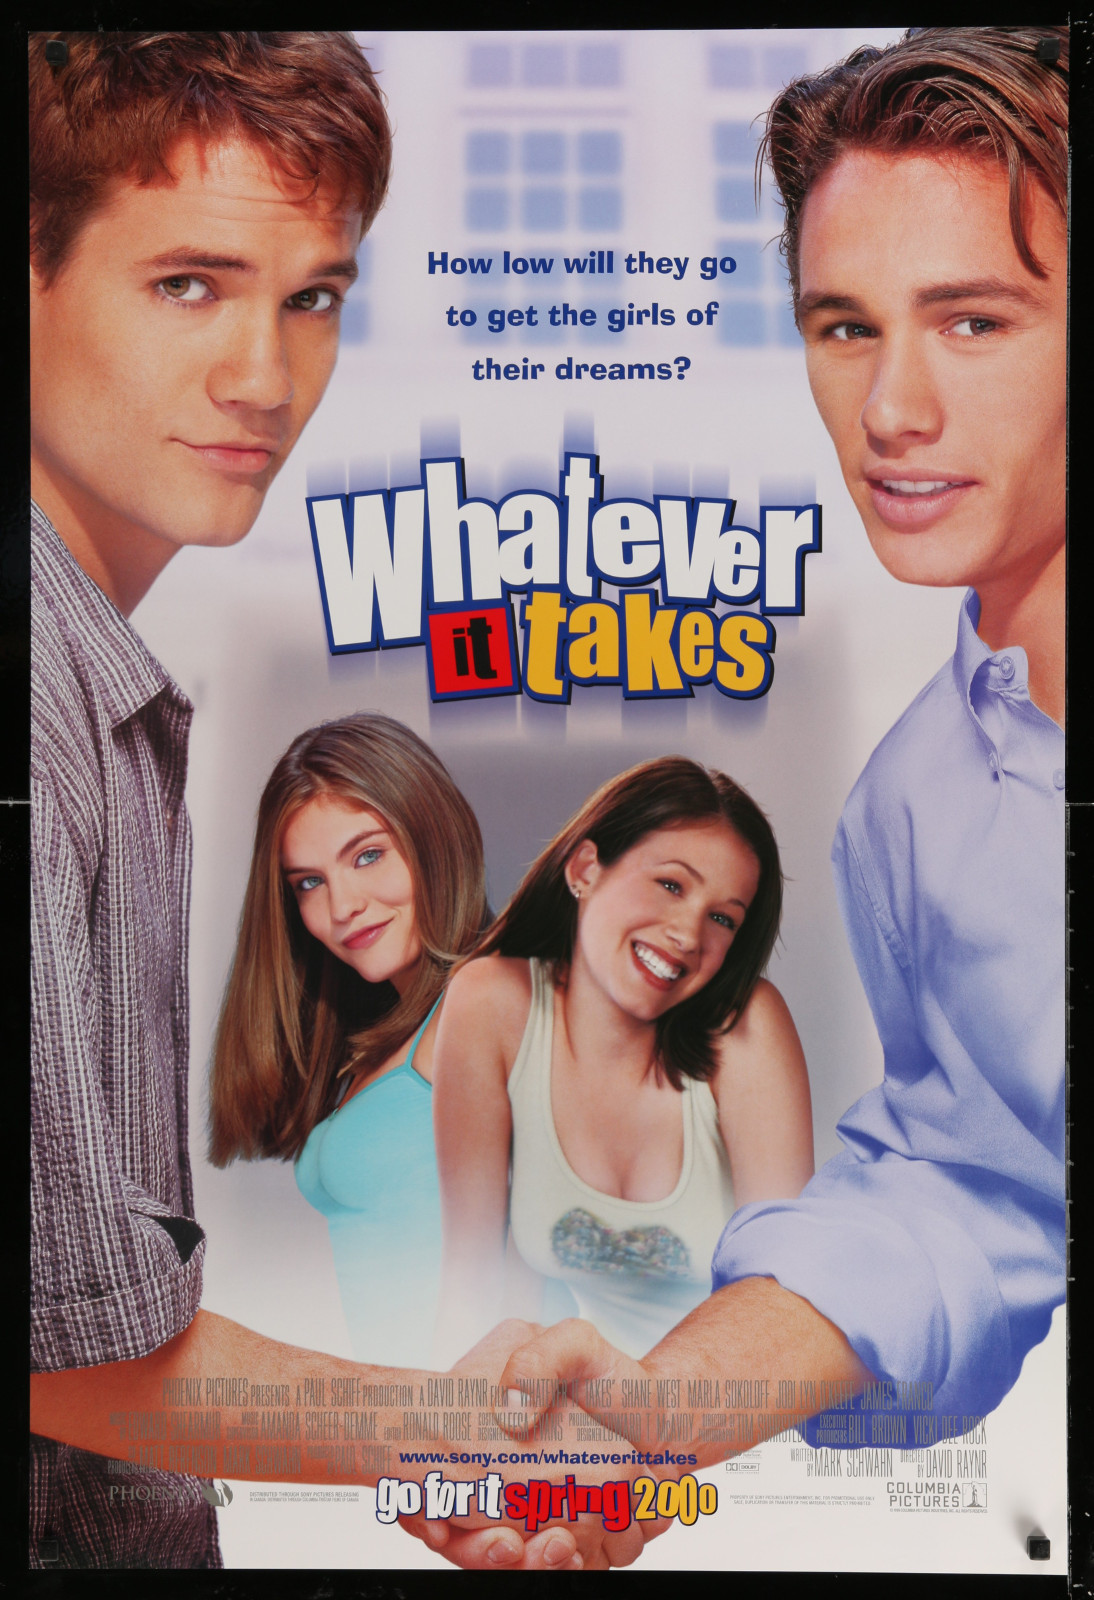 Whatever It Takes 2A391 A Part Of A Lot 24 Unfolded Double-Sided 27X40 One-Sheets '90S-00S Great Movie Images!